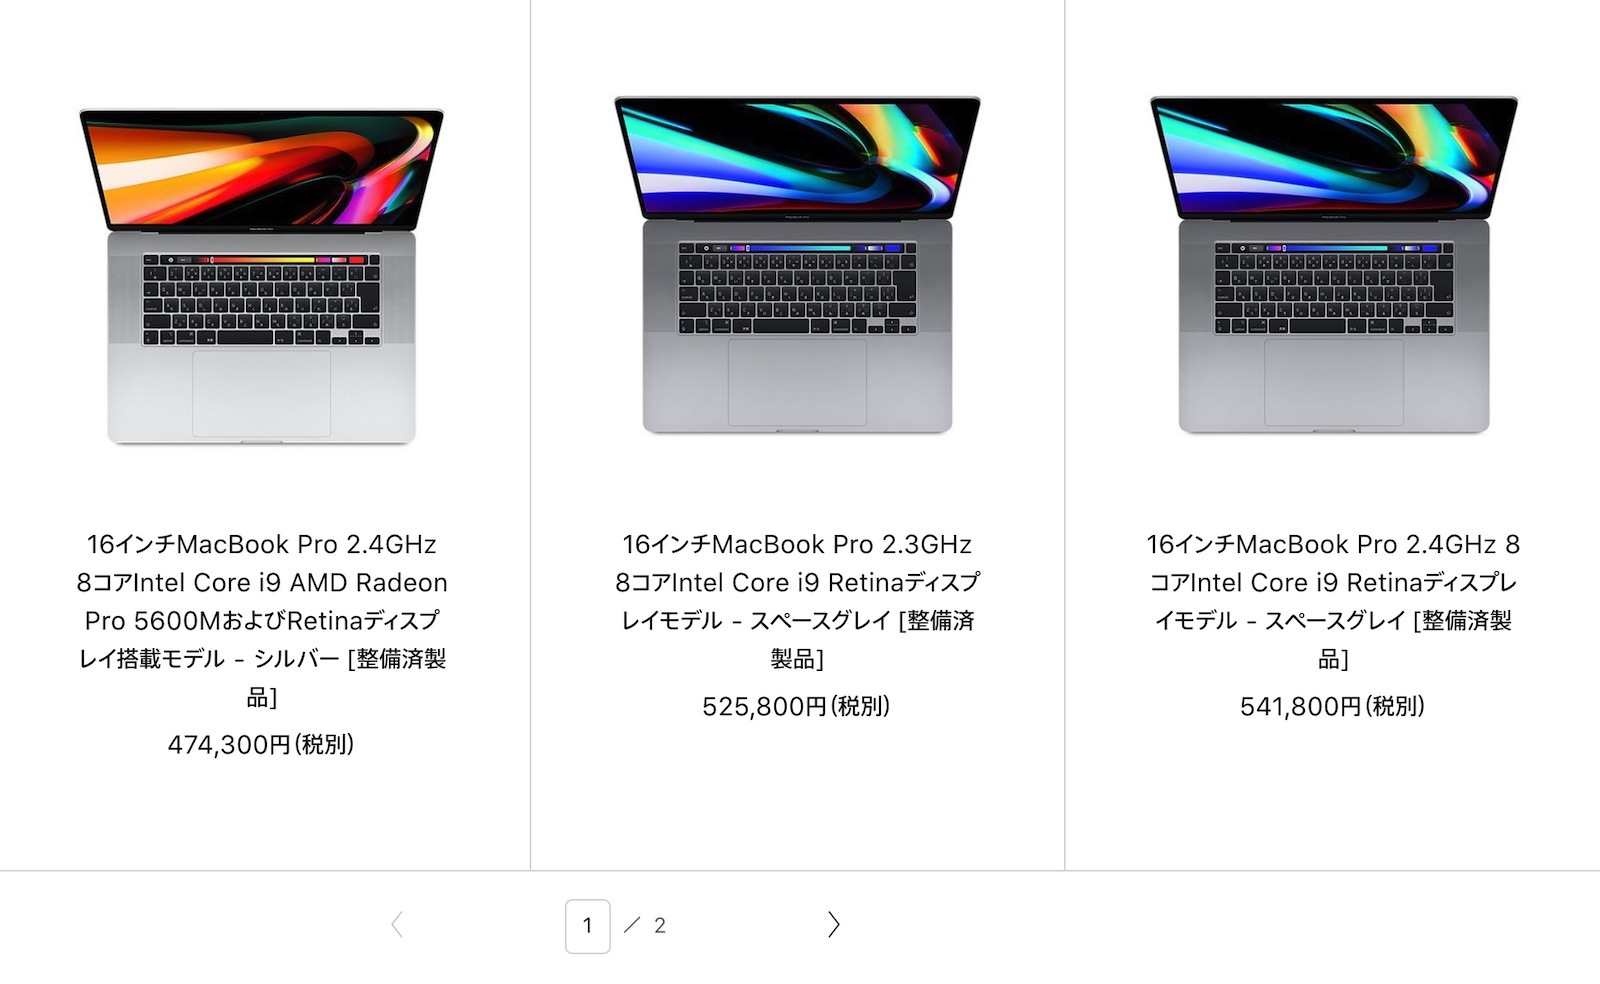 16-inch-macbook-pro-models.jpg